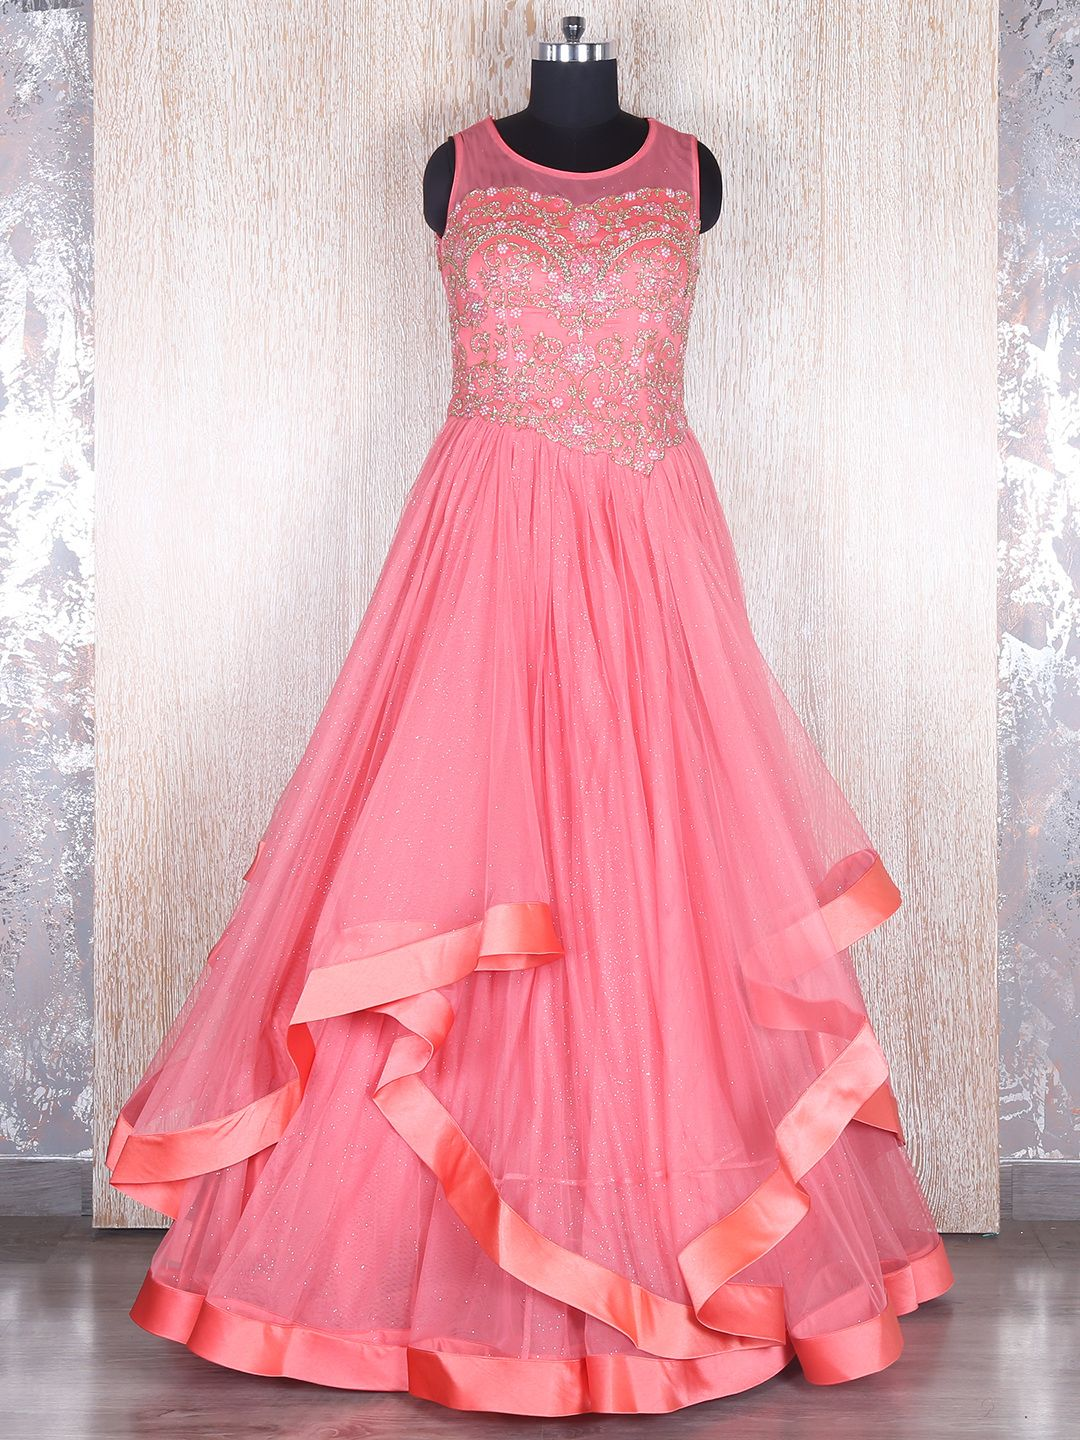 Pink Designer Net Gown | zoya | Pinterest | Gowns, Designers and ...